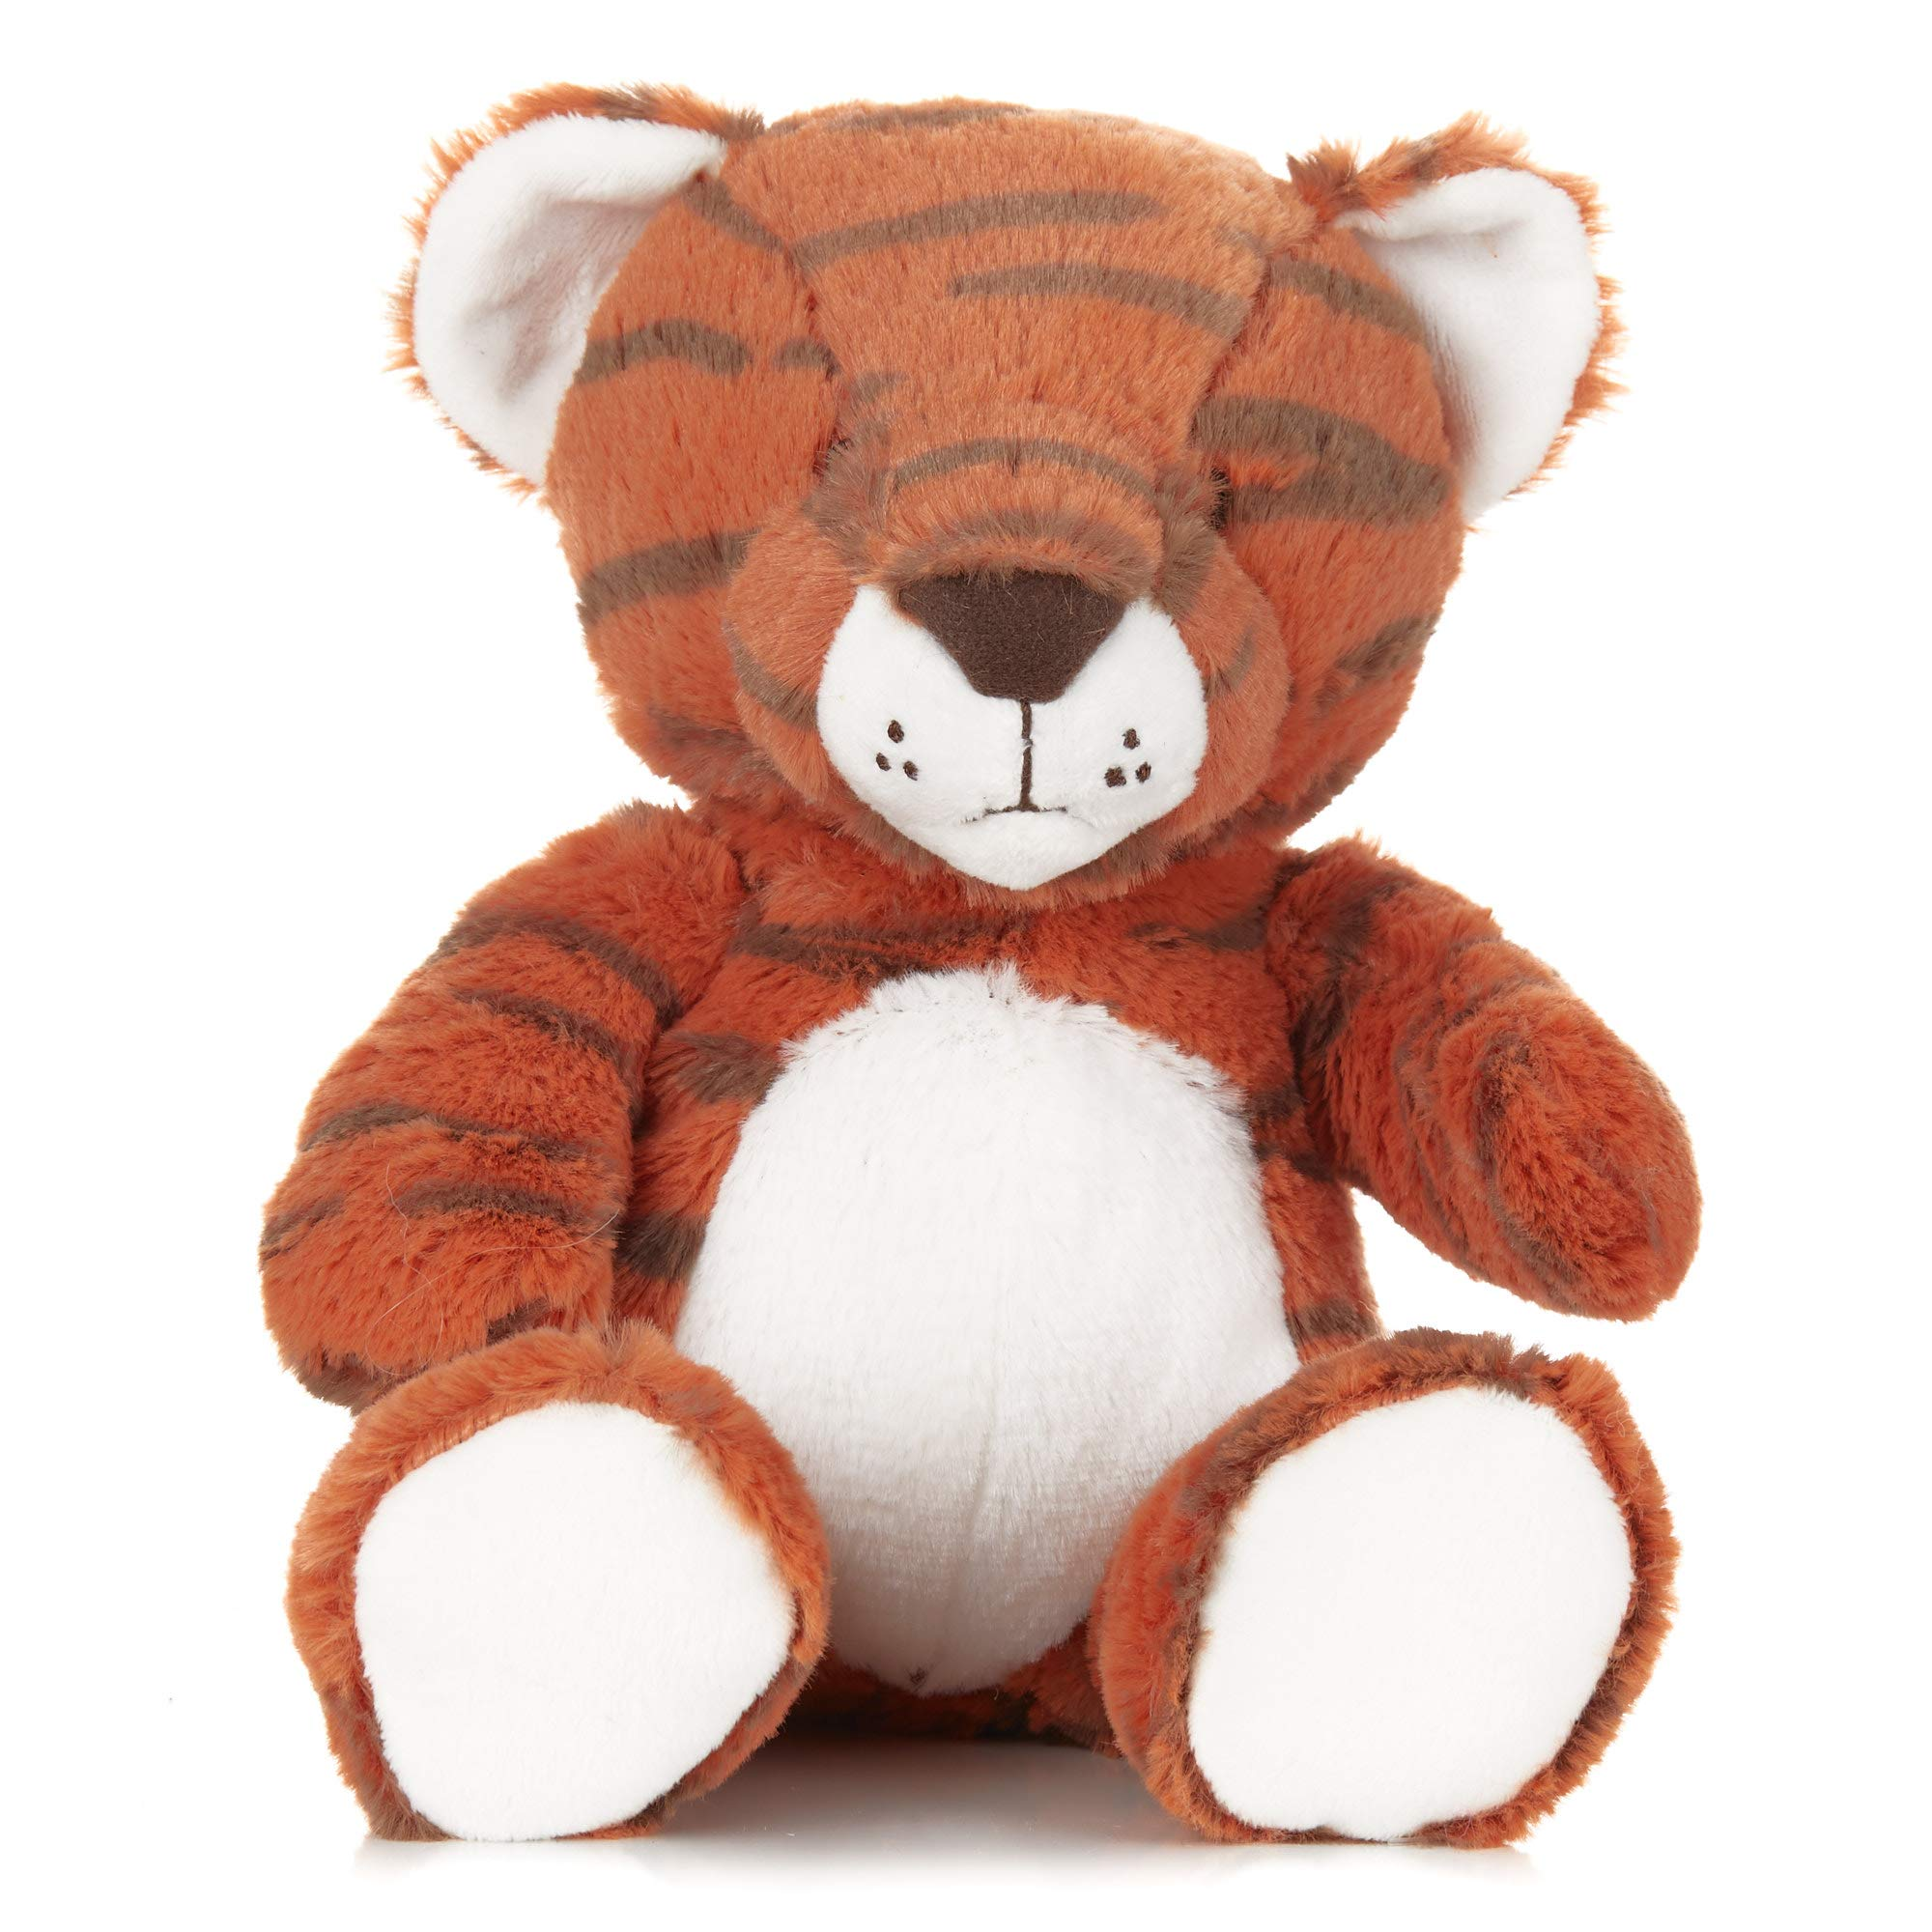 KIDS PREFERRED Carter's Tiger Stuffed Animal Plush Toy, 6.5 Inches